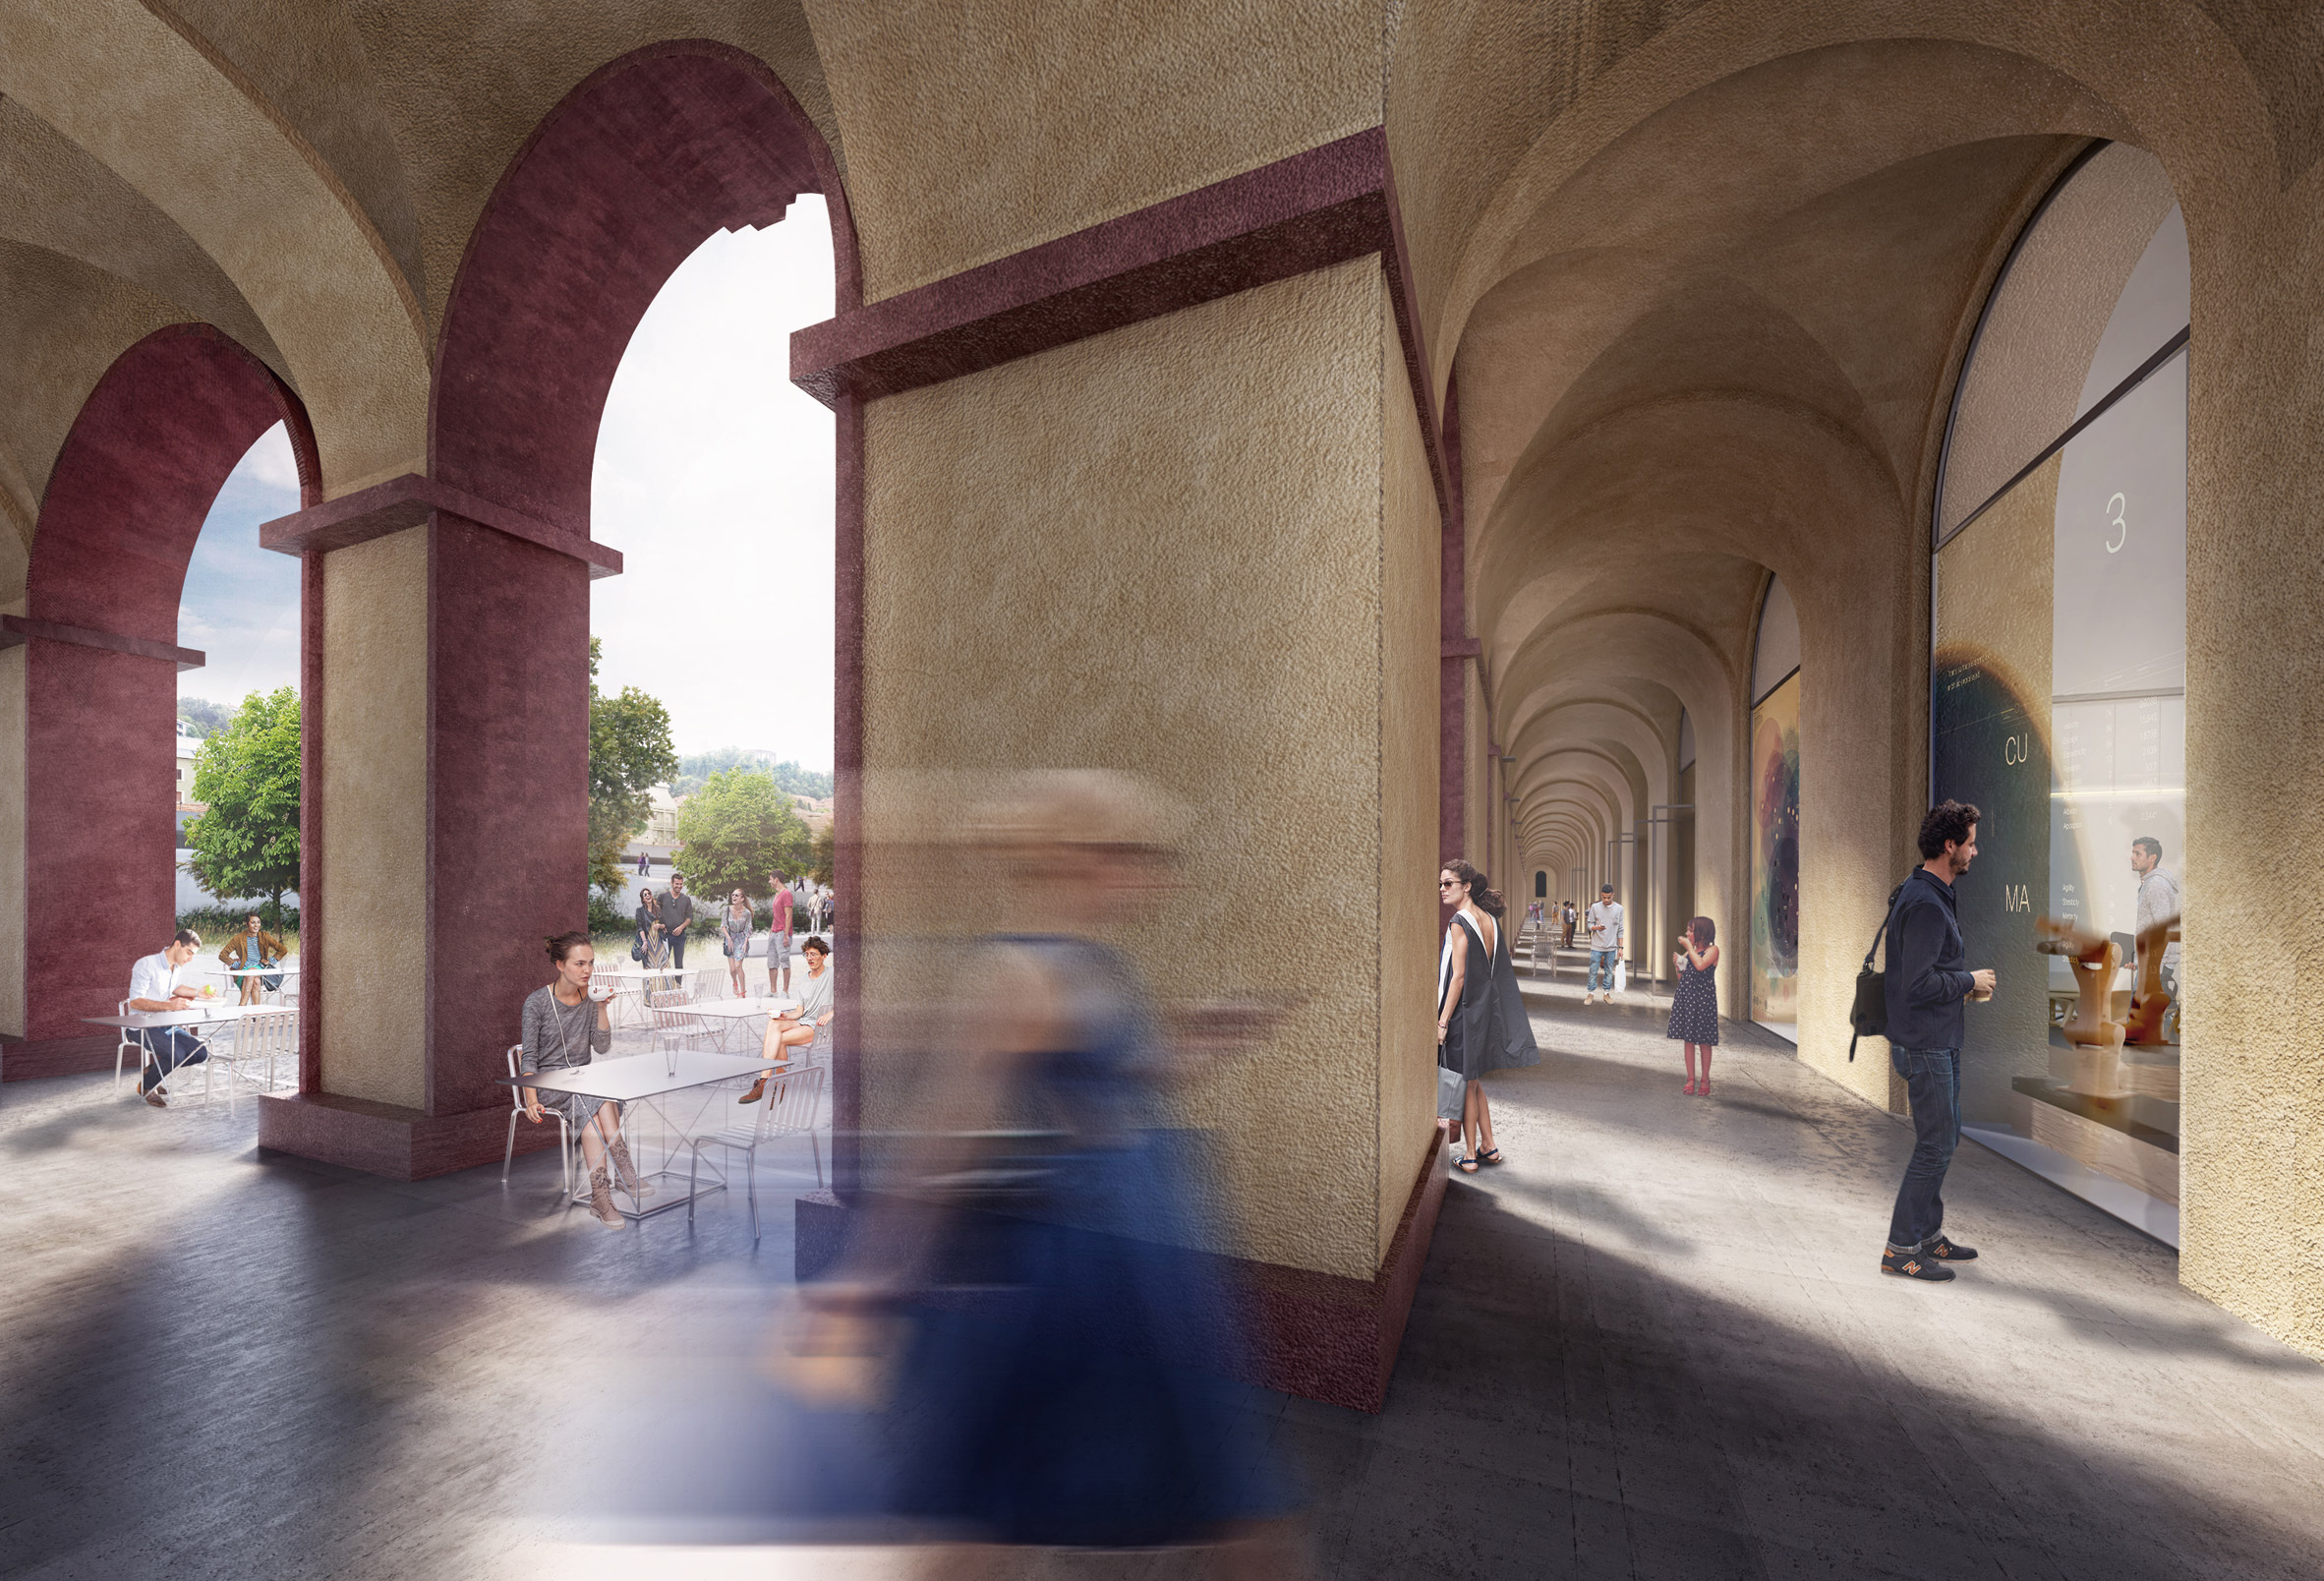 Carlo Ratti to transform Italian military barracks into open-source architecture laboratory